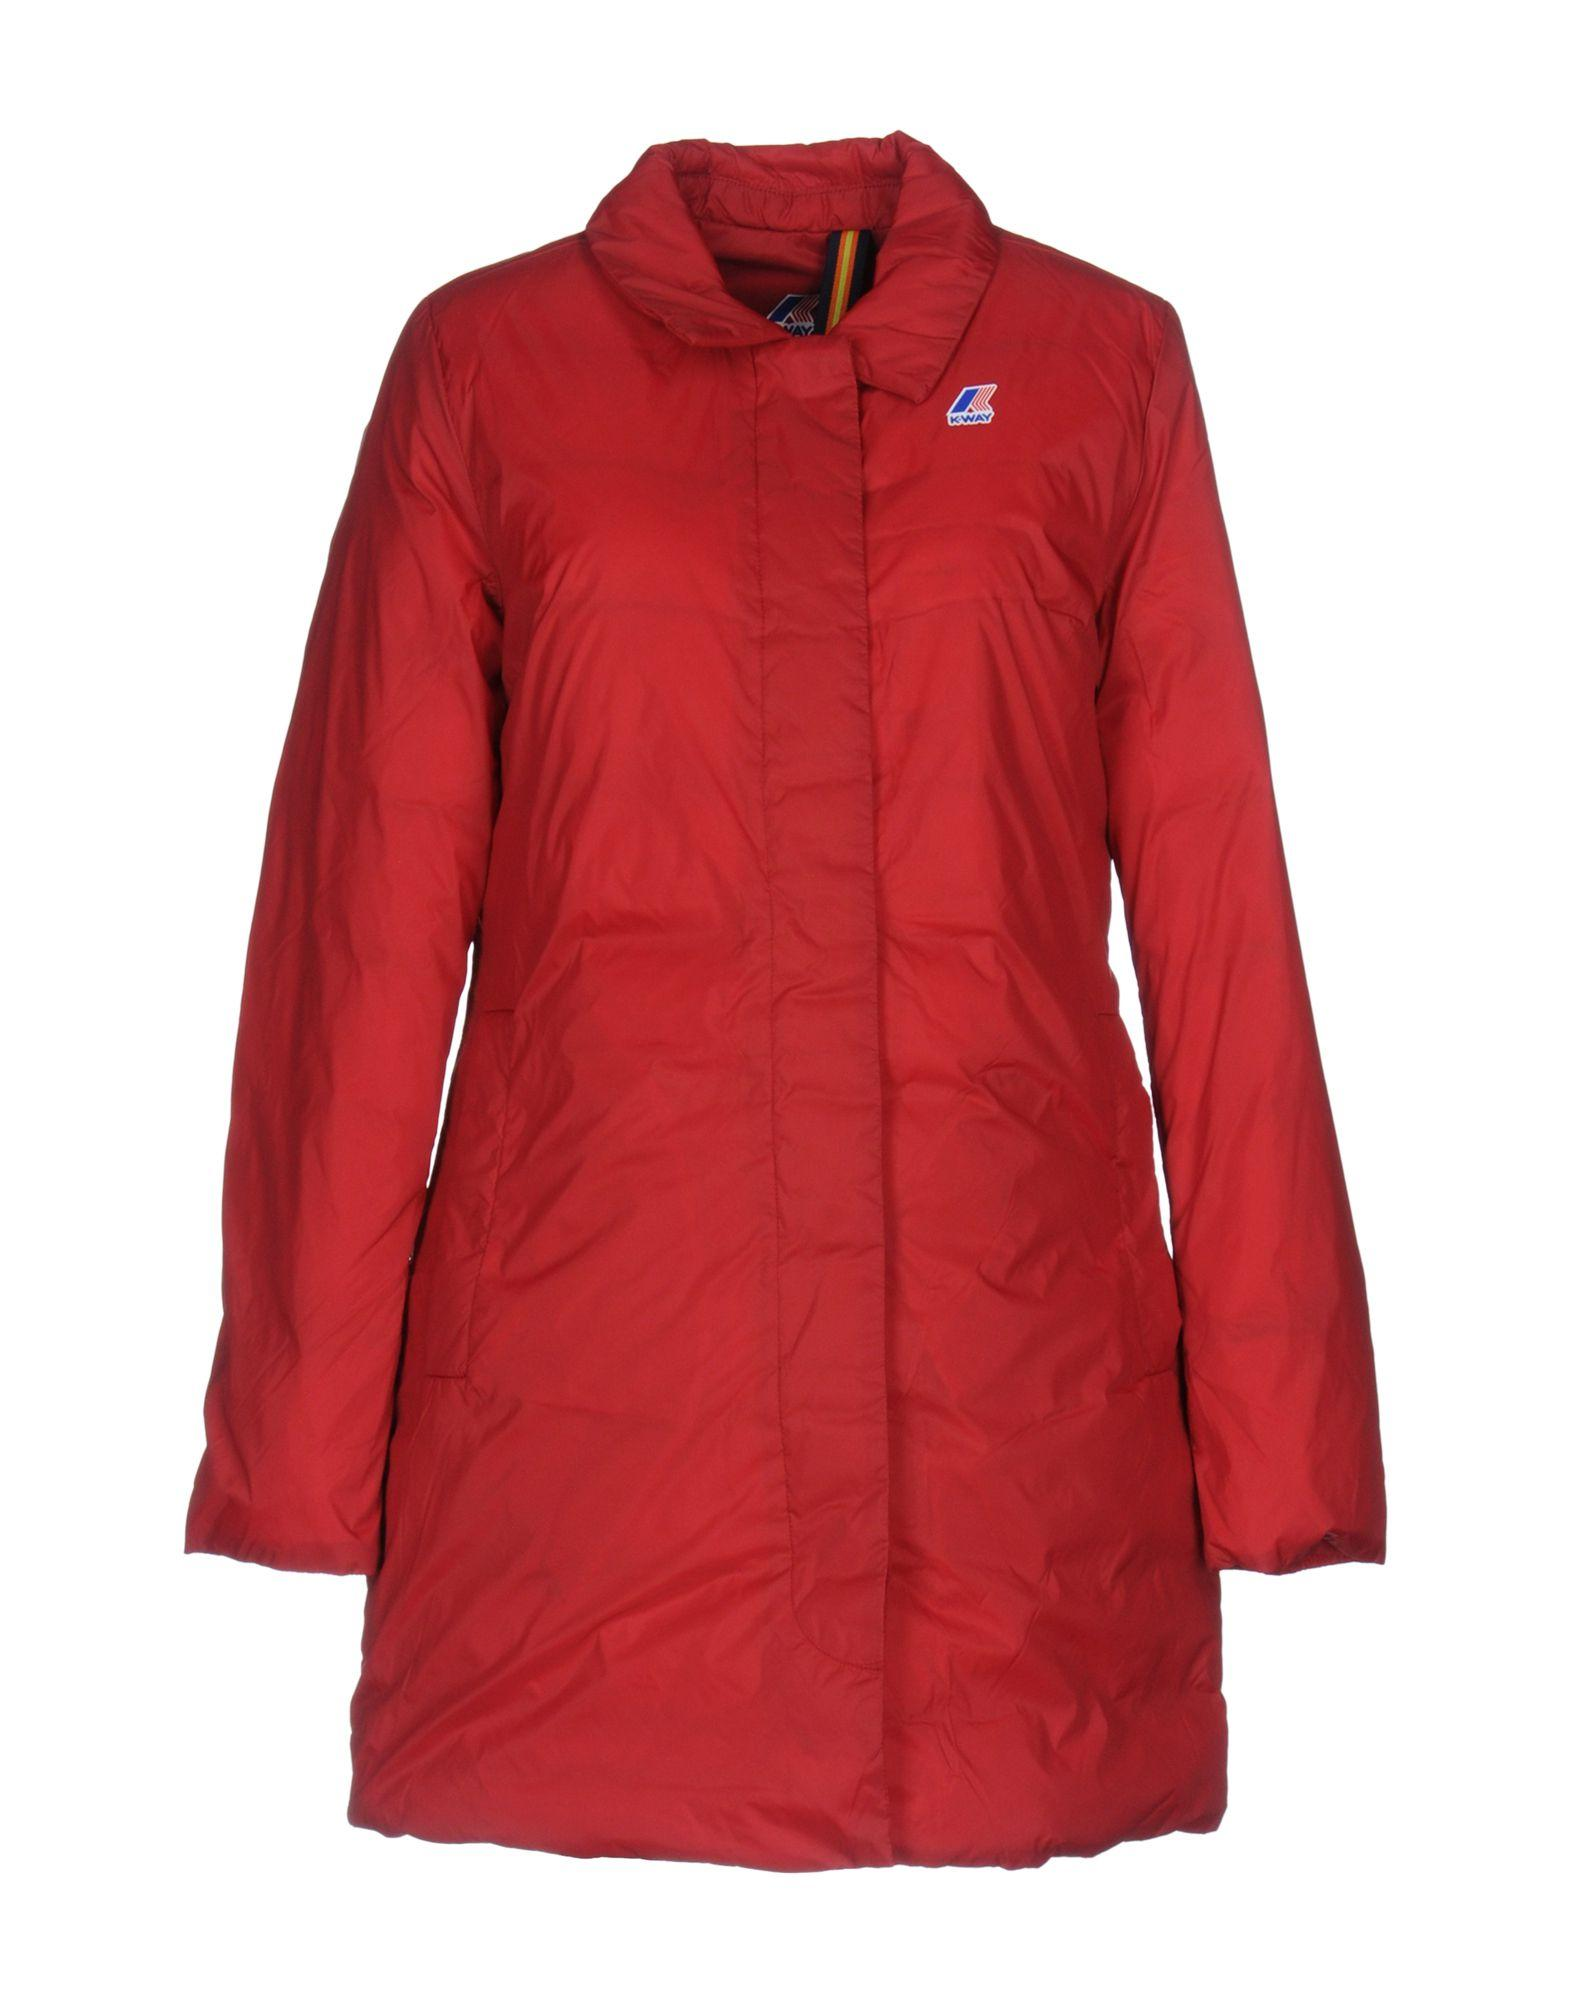 K-way Down Jacket In Red